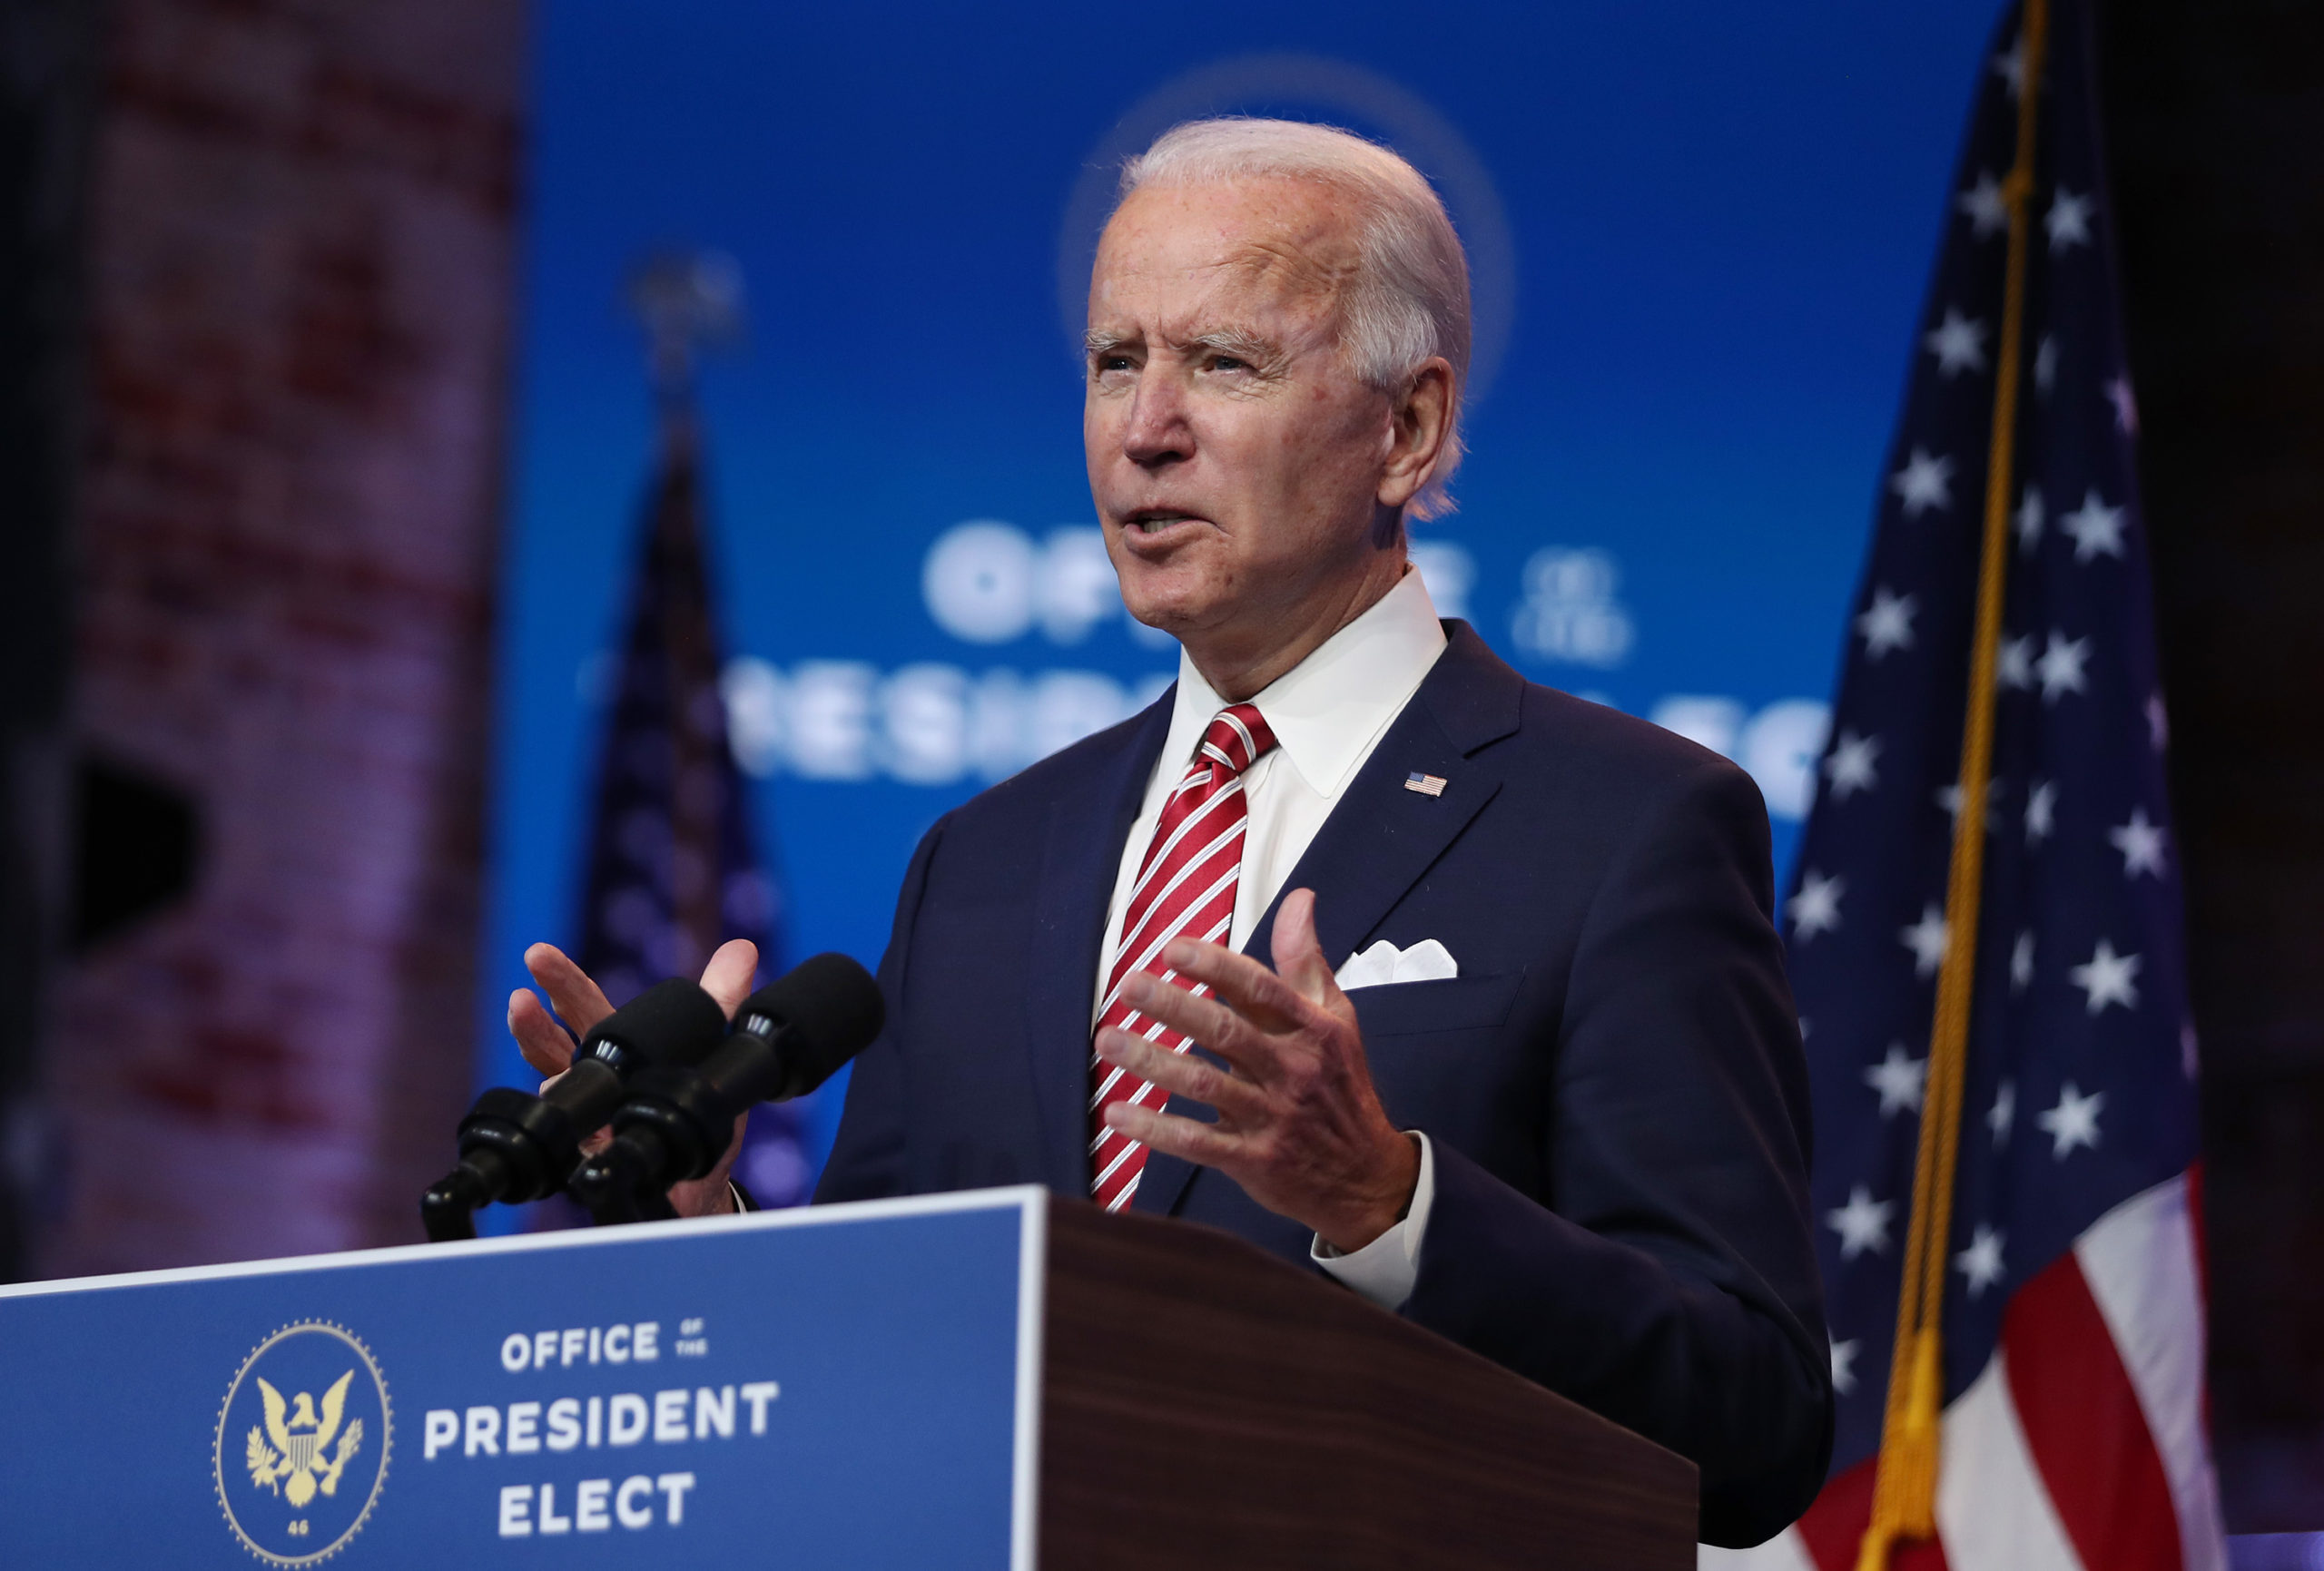 U.S. President-elect Joe Biden delivers remarks about the U.S. economy during a press briefing at the Queen Theater on November 16, 2020 in Wilmington, Delaware. (Joe Raedle/Getty Images)